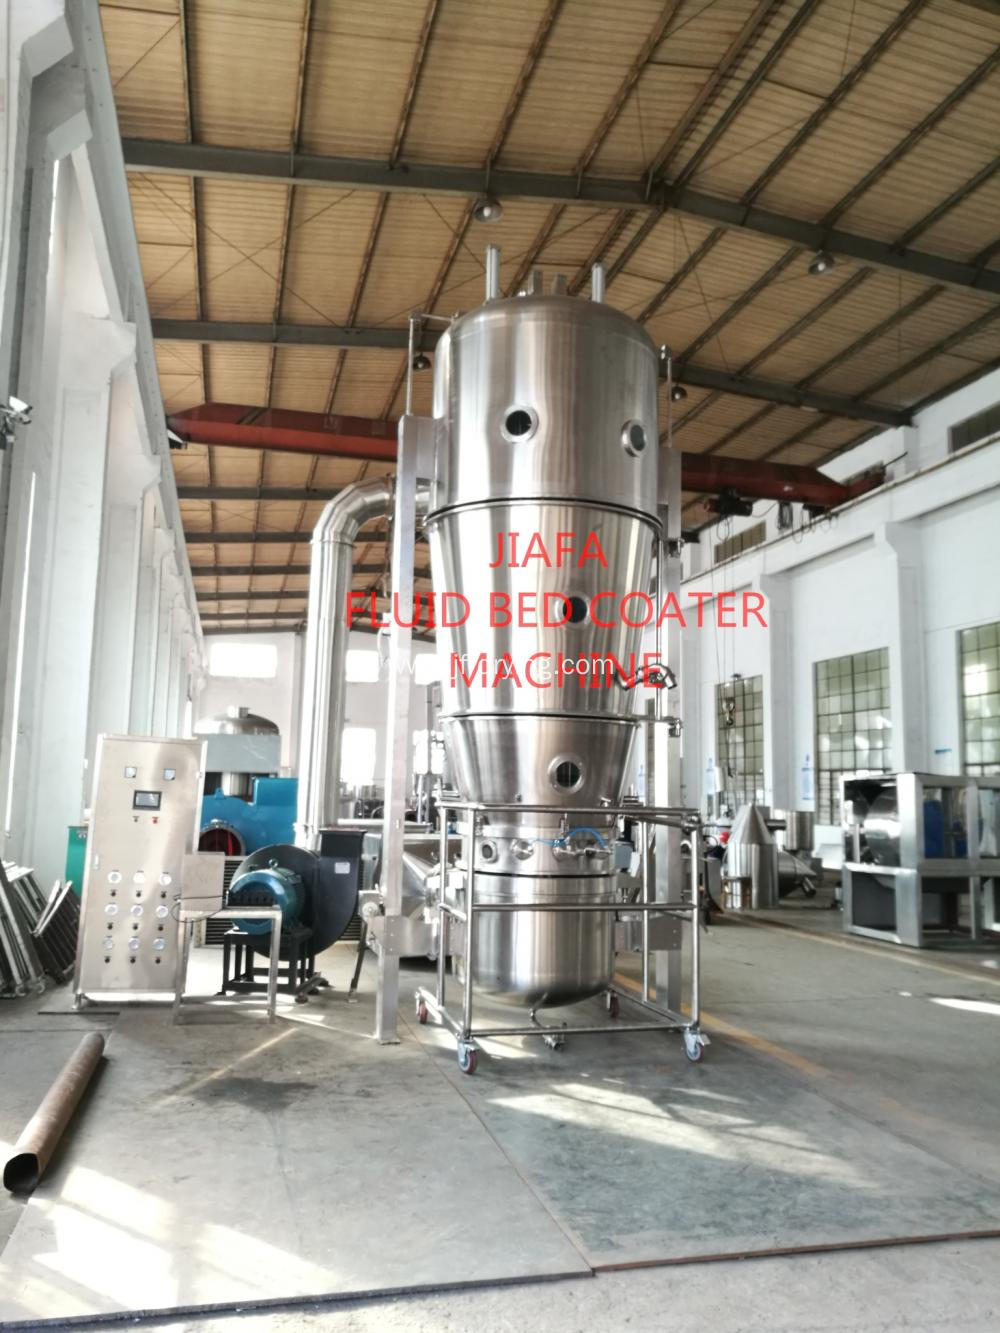 Fluid bed coater machine